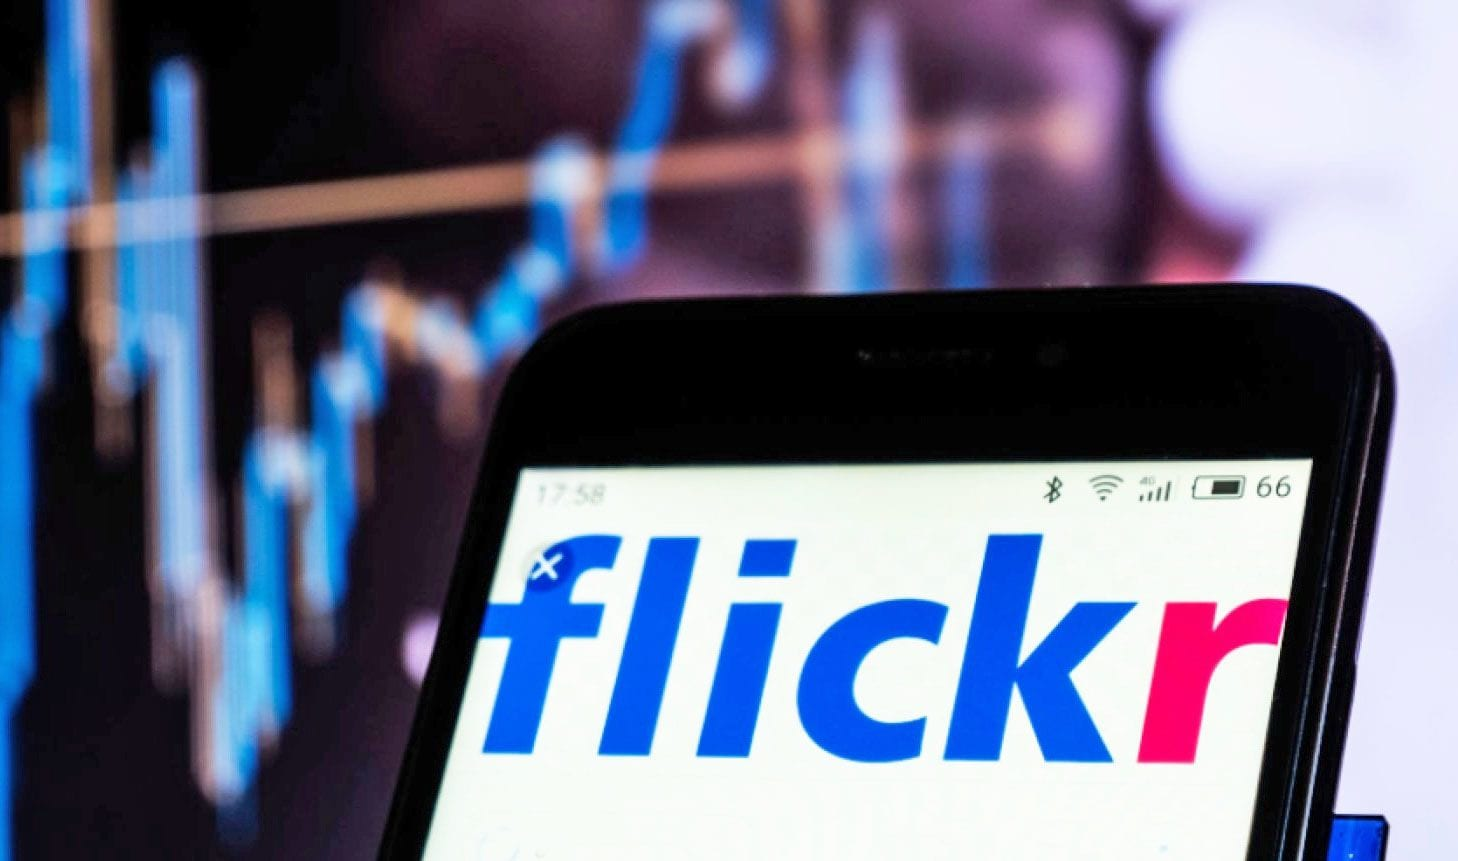 Flickr will end 1TB - limit free users - 1000 photos